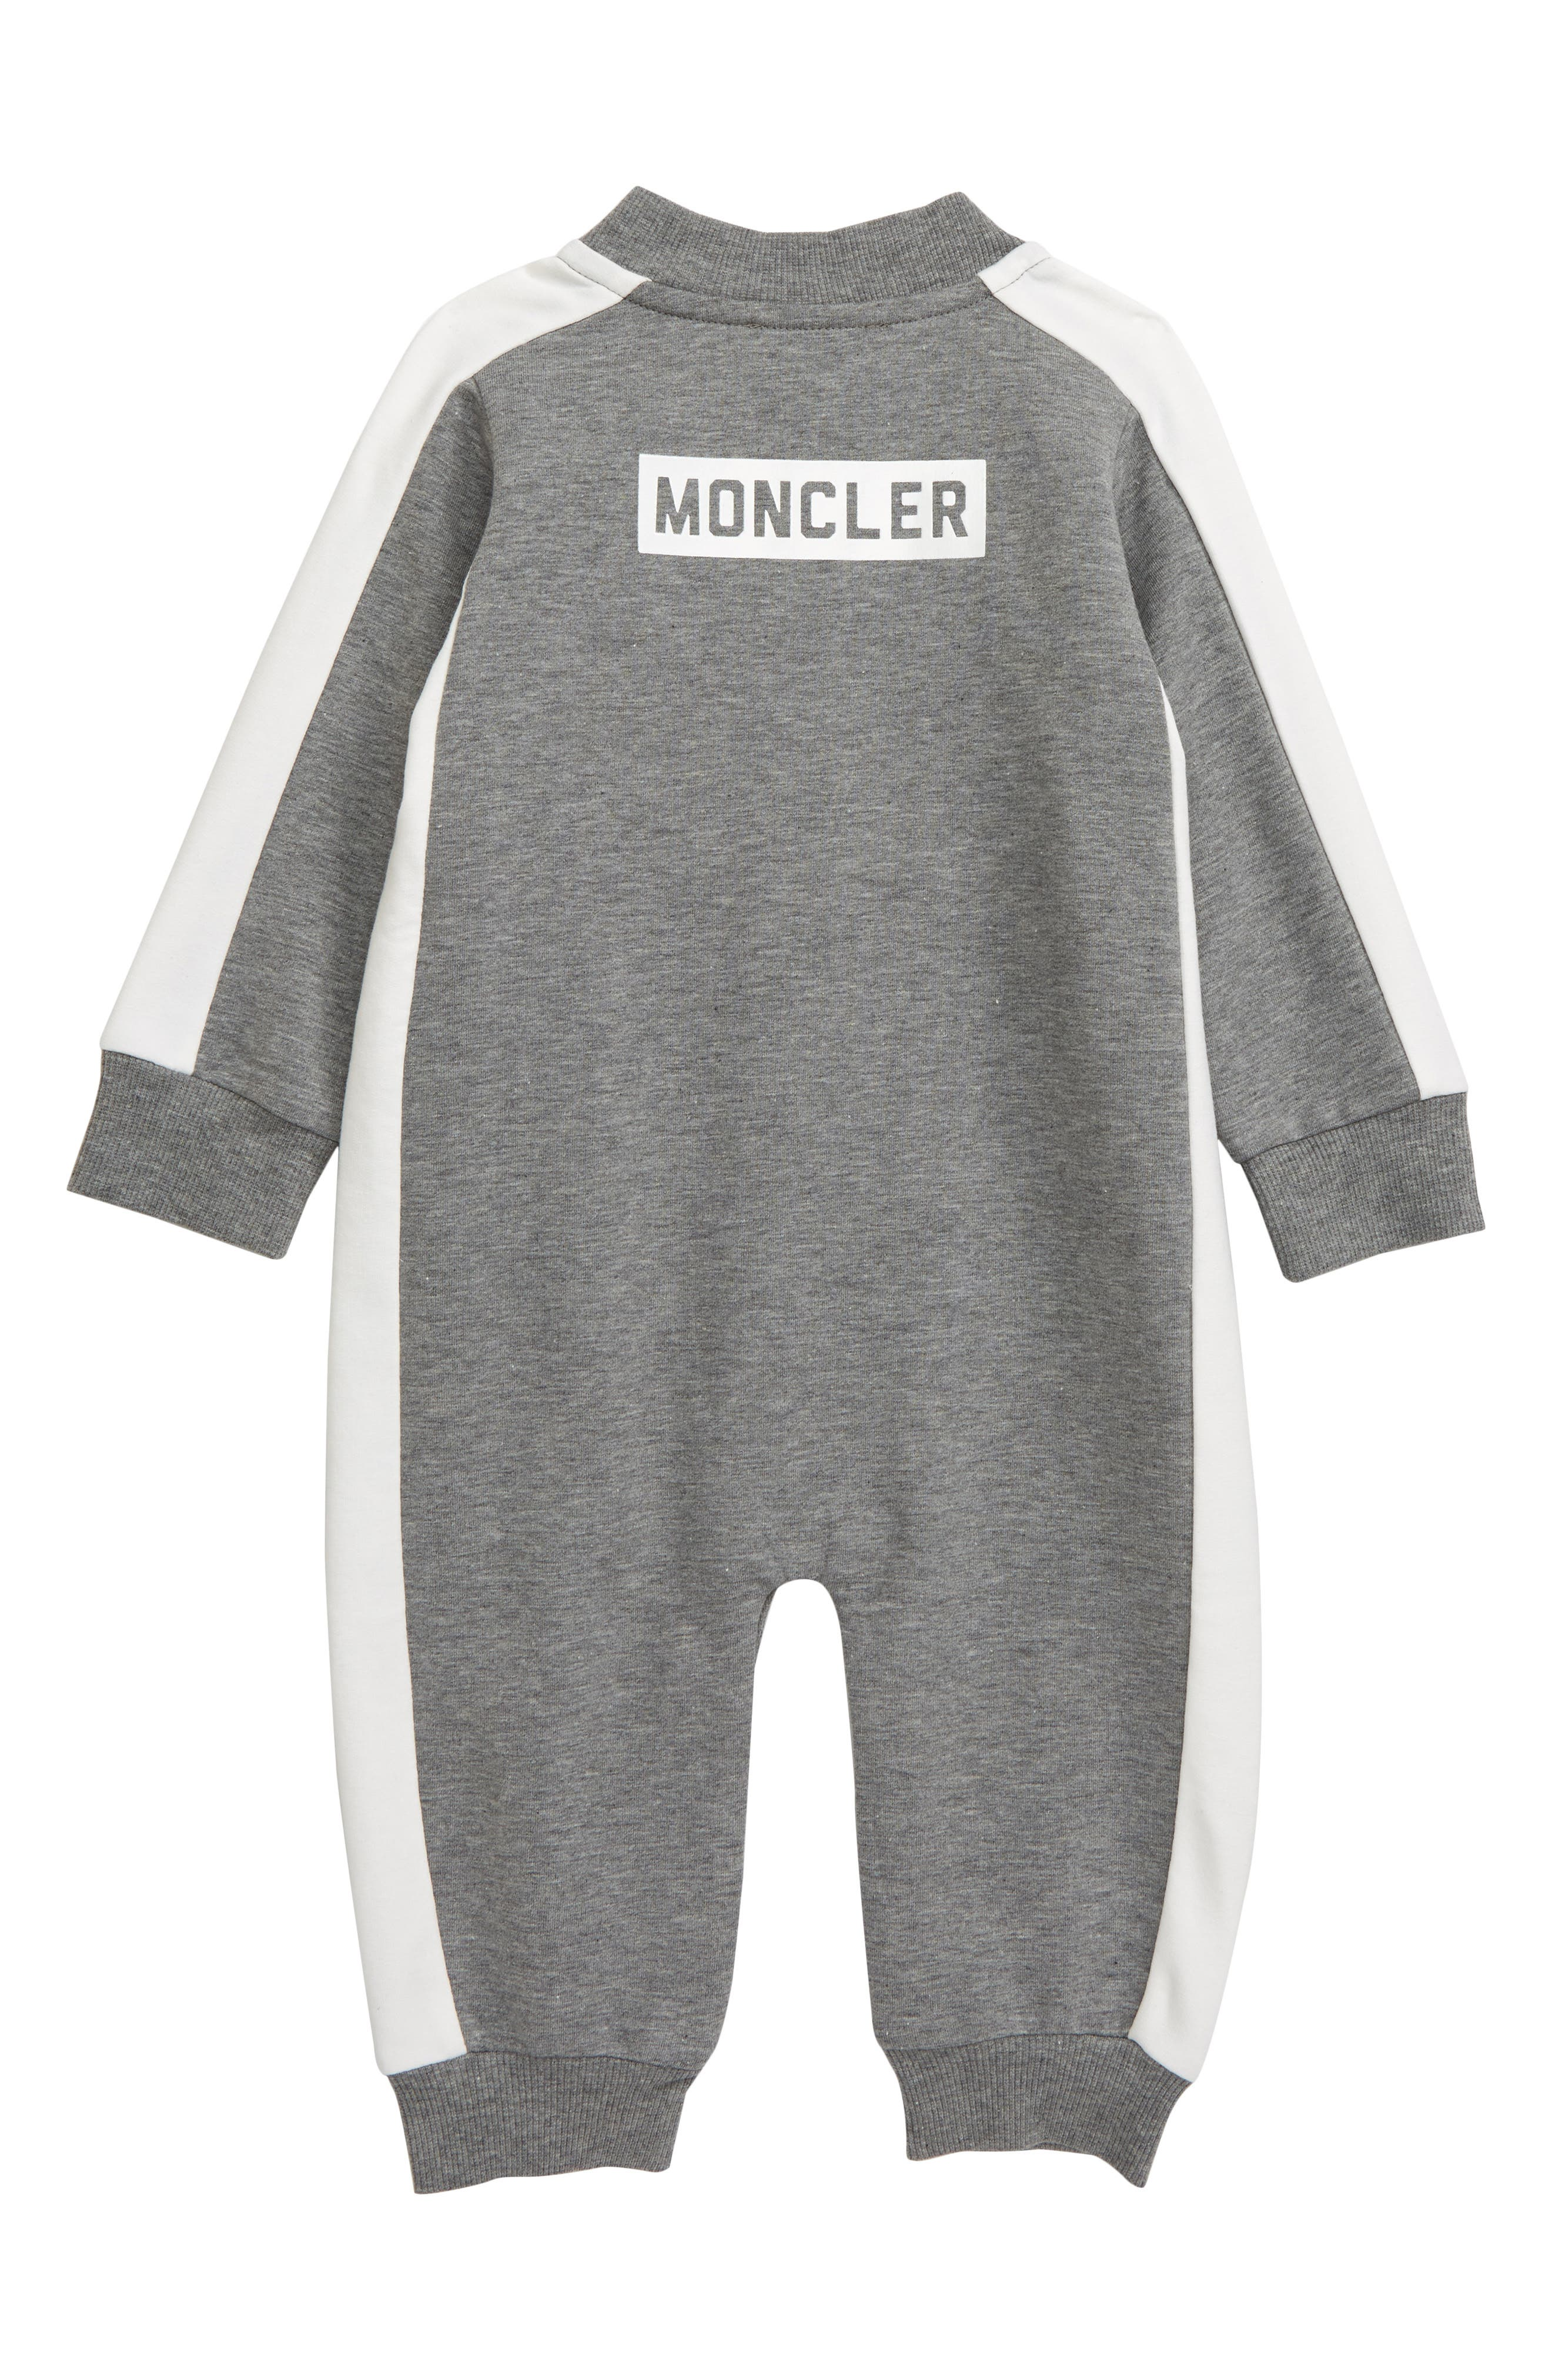 bdc2fdc07 Moncler Baby Clothing, Shoes, & Accessories | Nordstrom